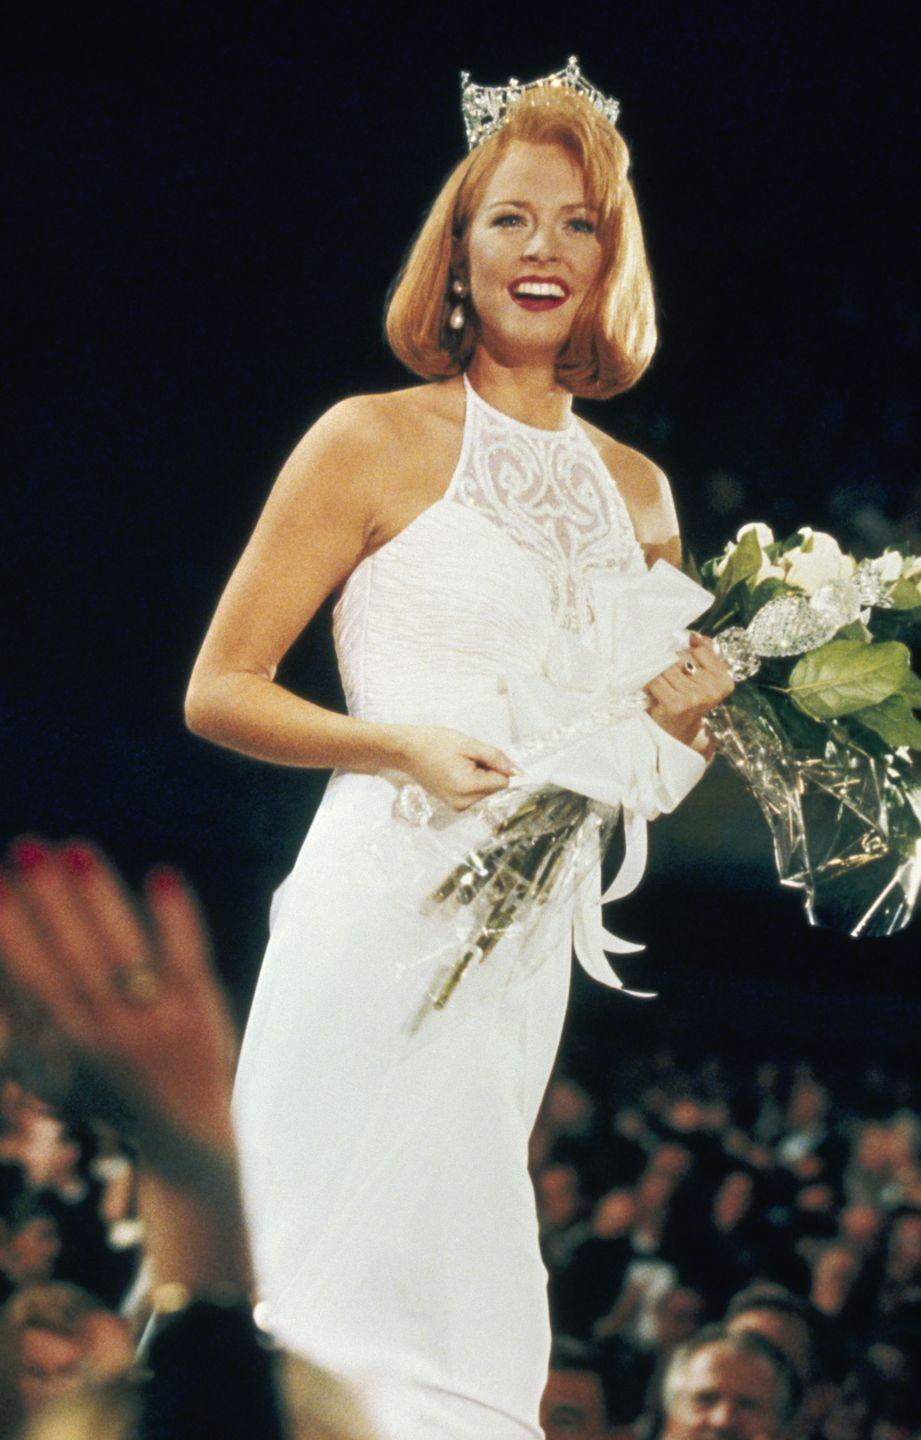 <p>In the mid-'90s, halter tops were one of the biggest trends out there. Shawntel Smith from Oklahoma chose the iconic style for the competition, and she took home the title in 1996. </p>